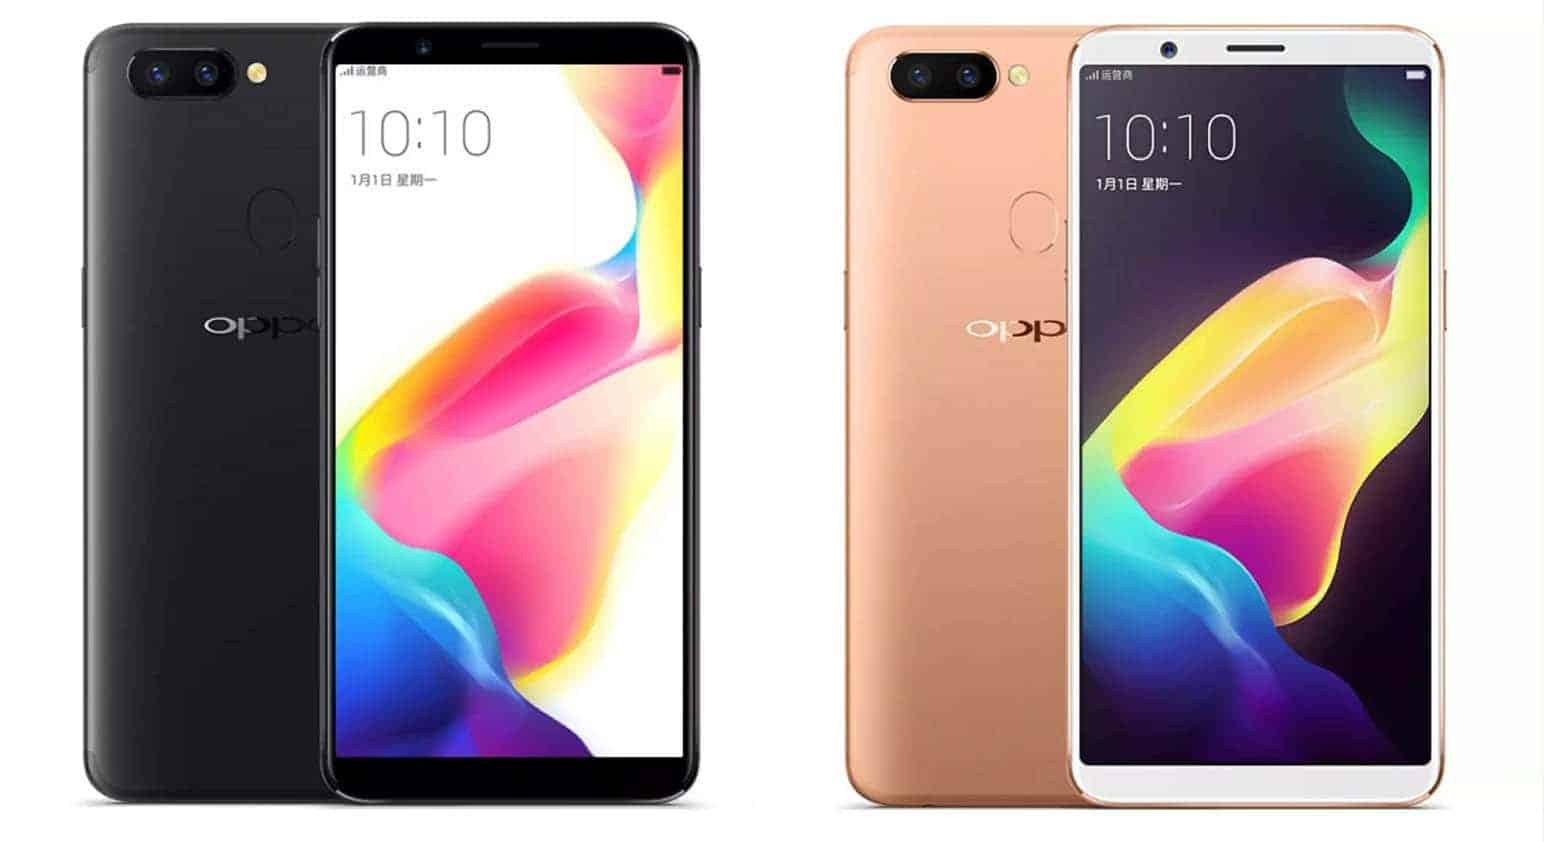 Oppo R11s Leaks In Three Colors And From Multiple Angles